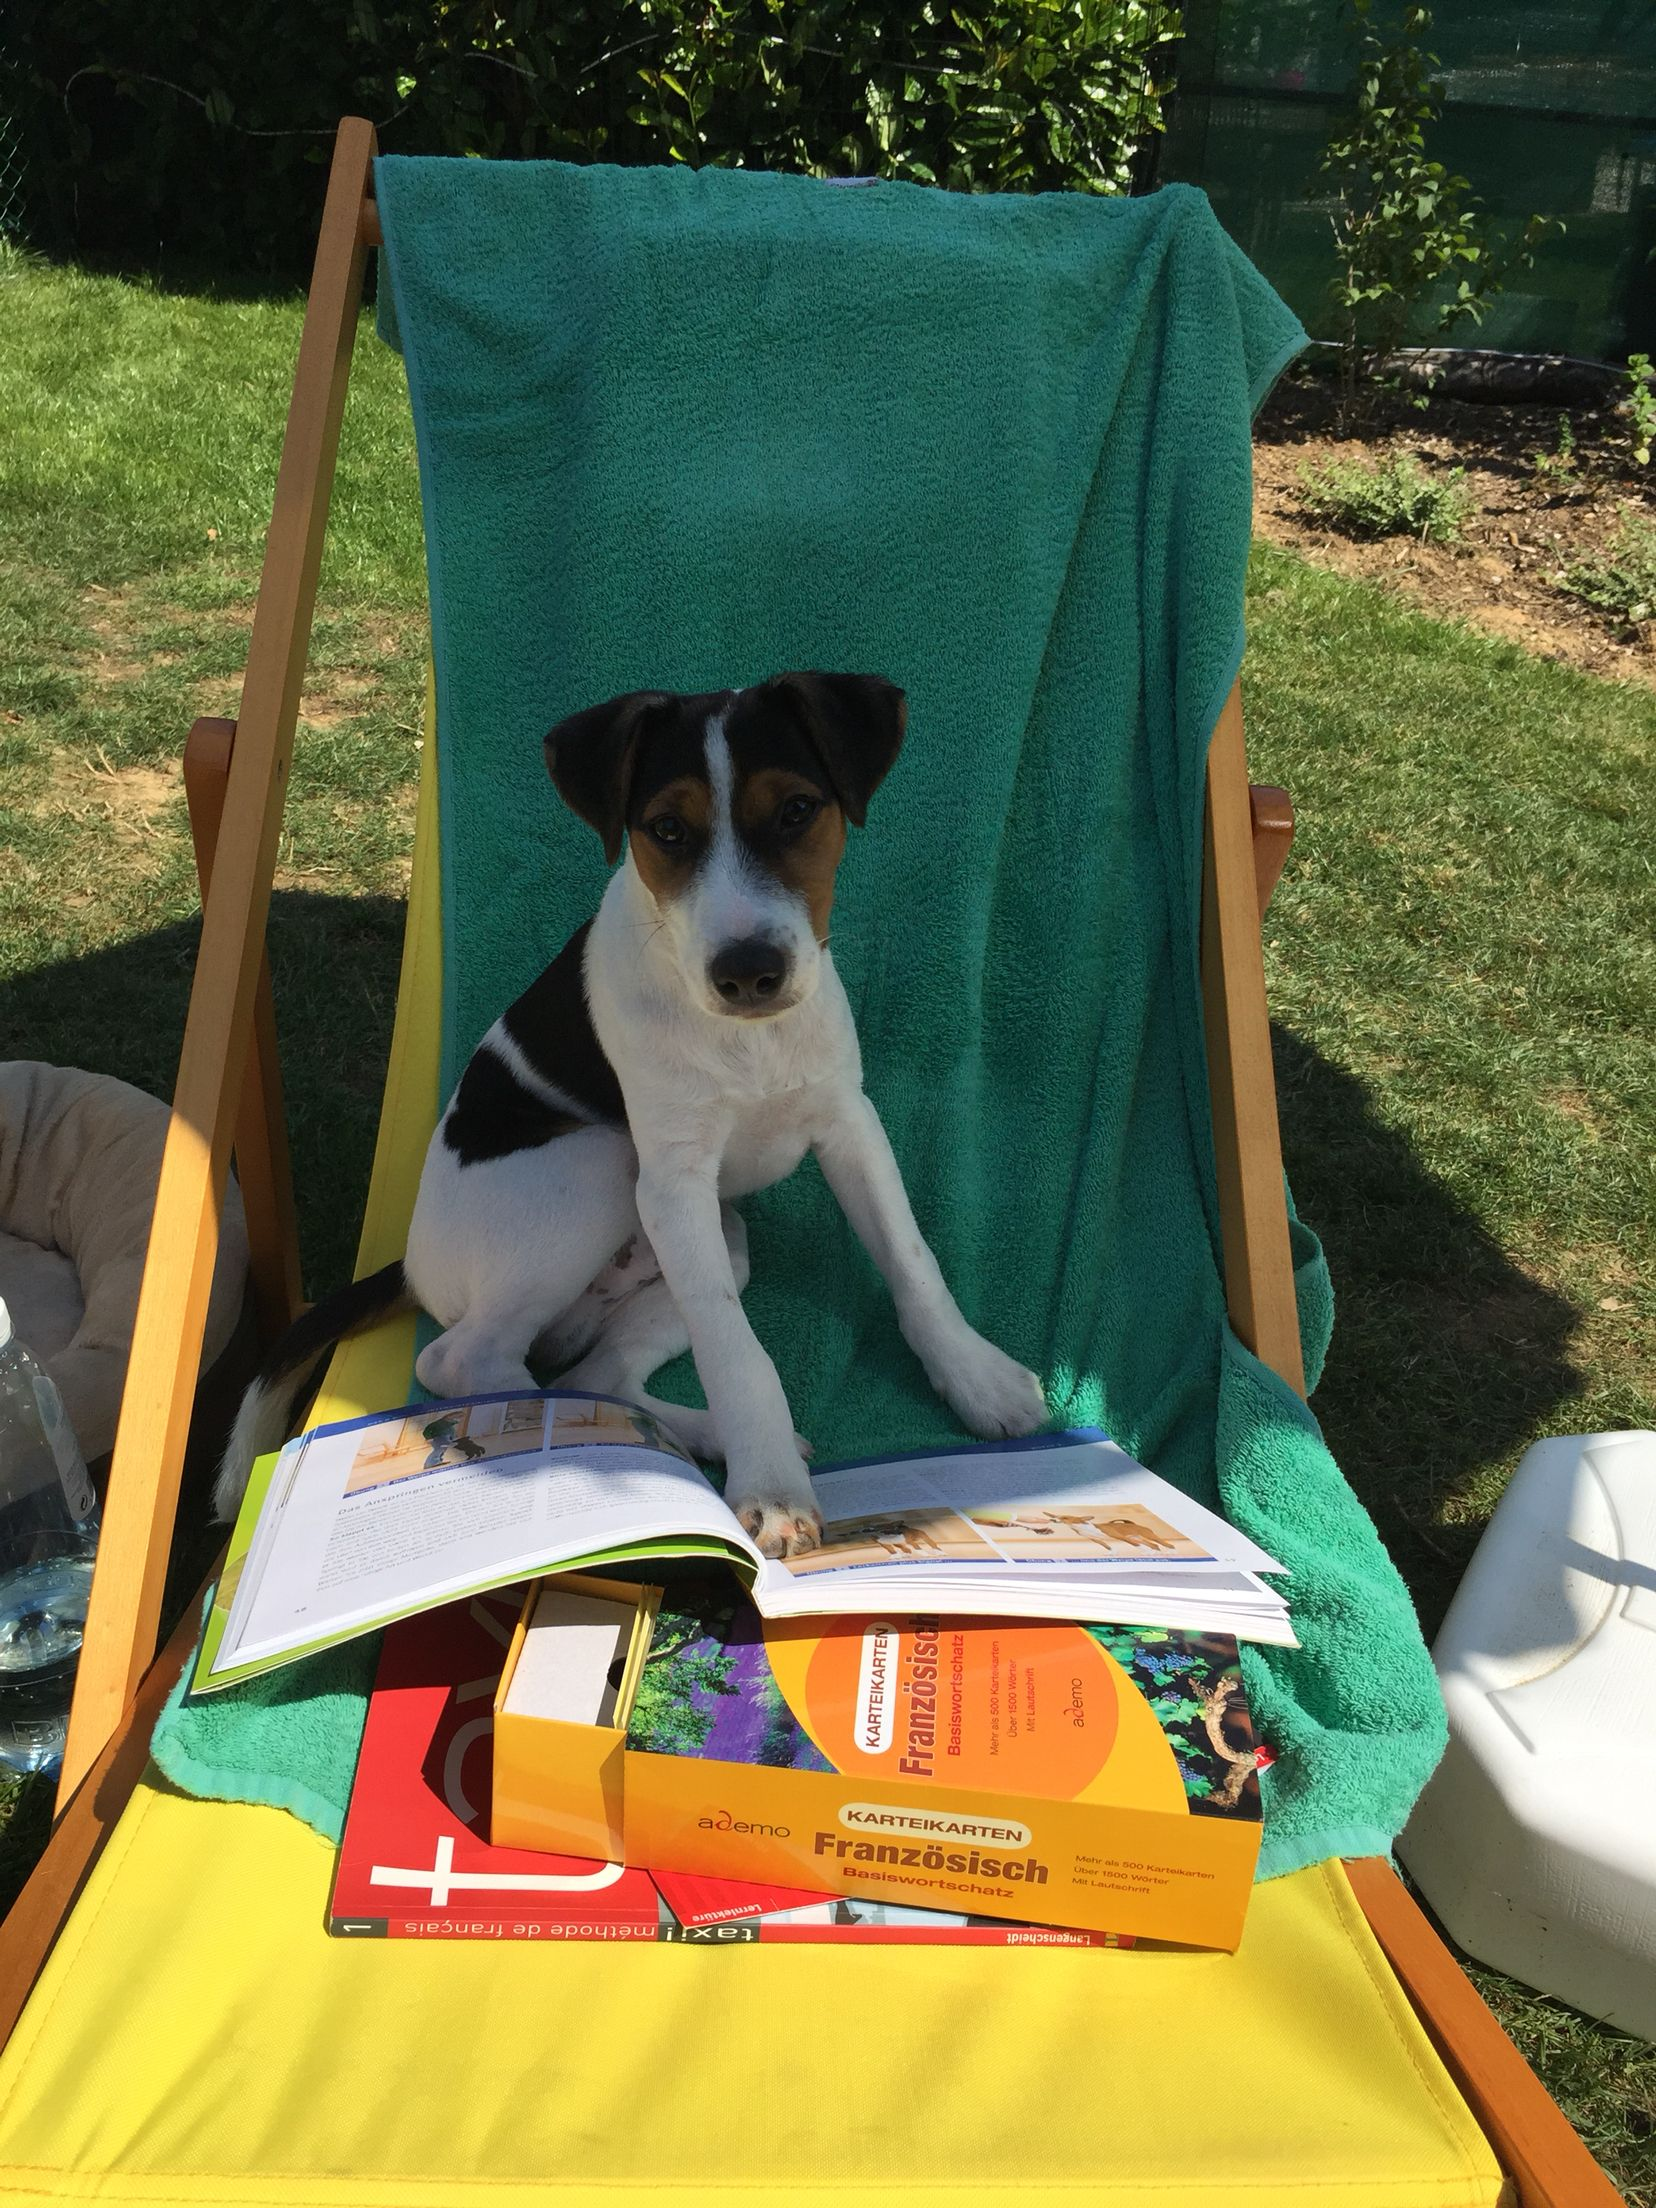 Parson Russel Terrier - relaxing and reading